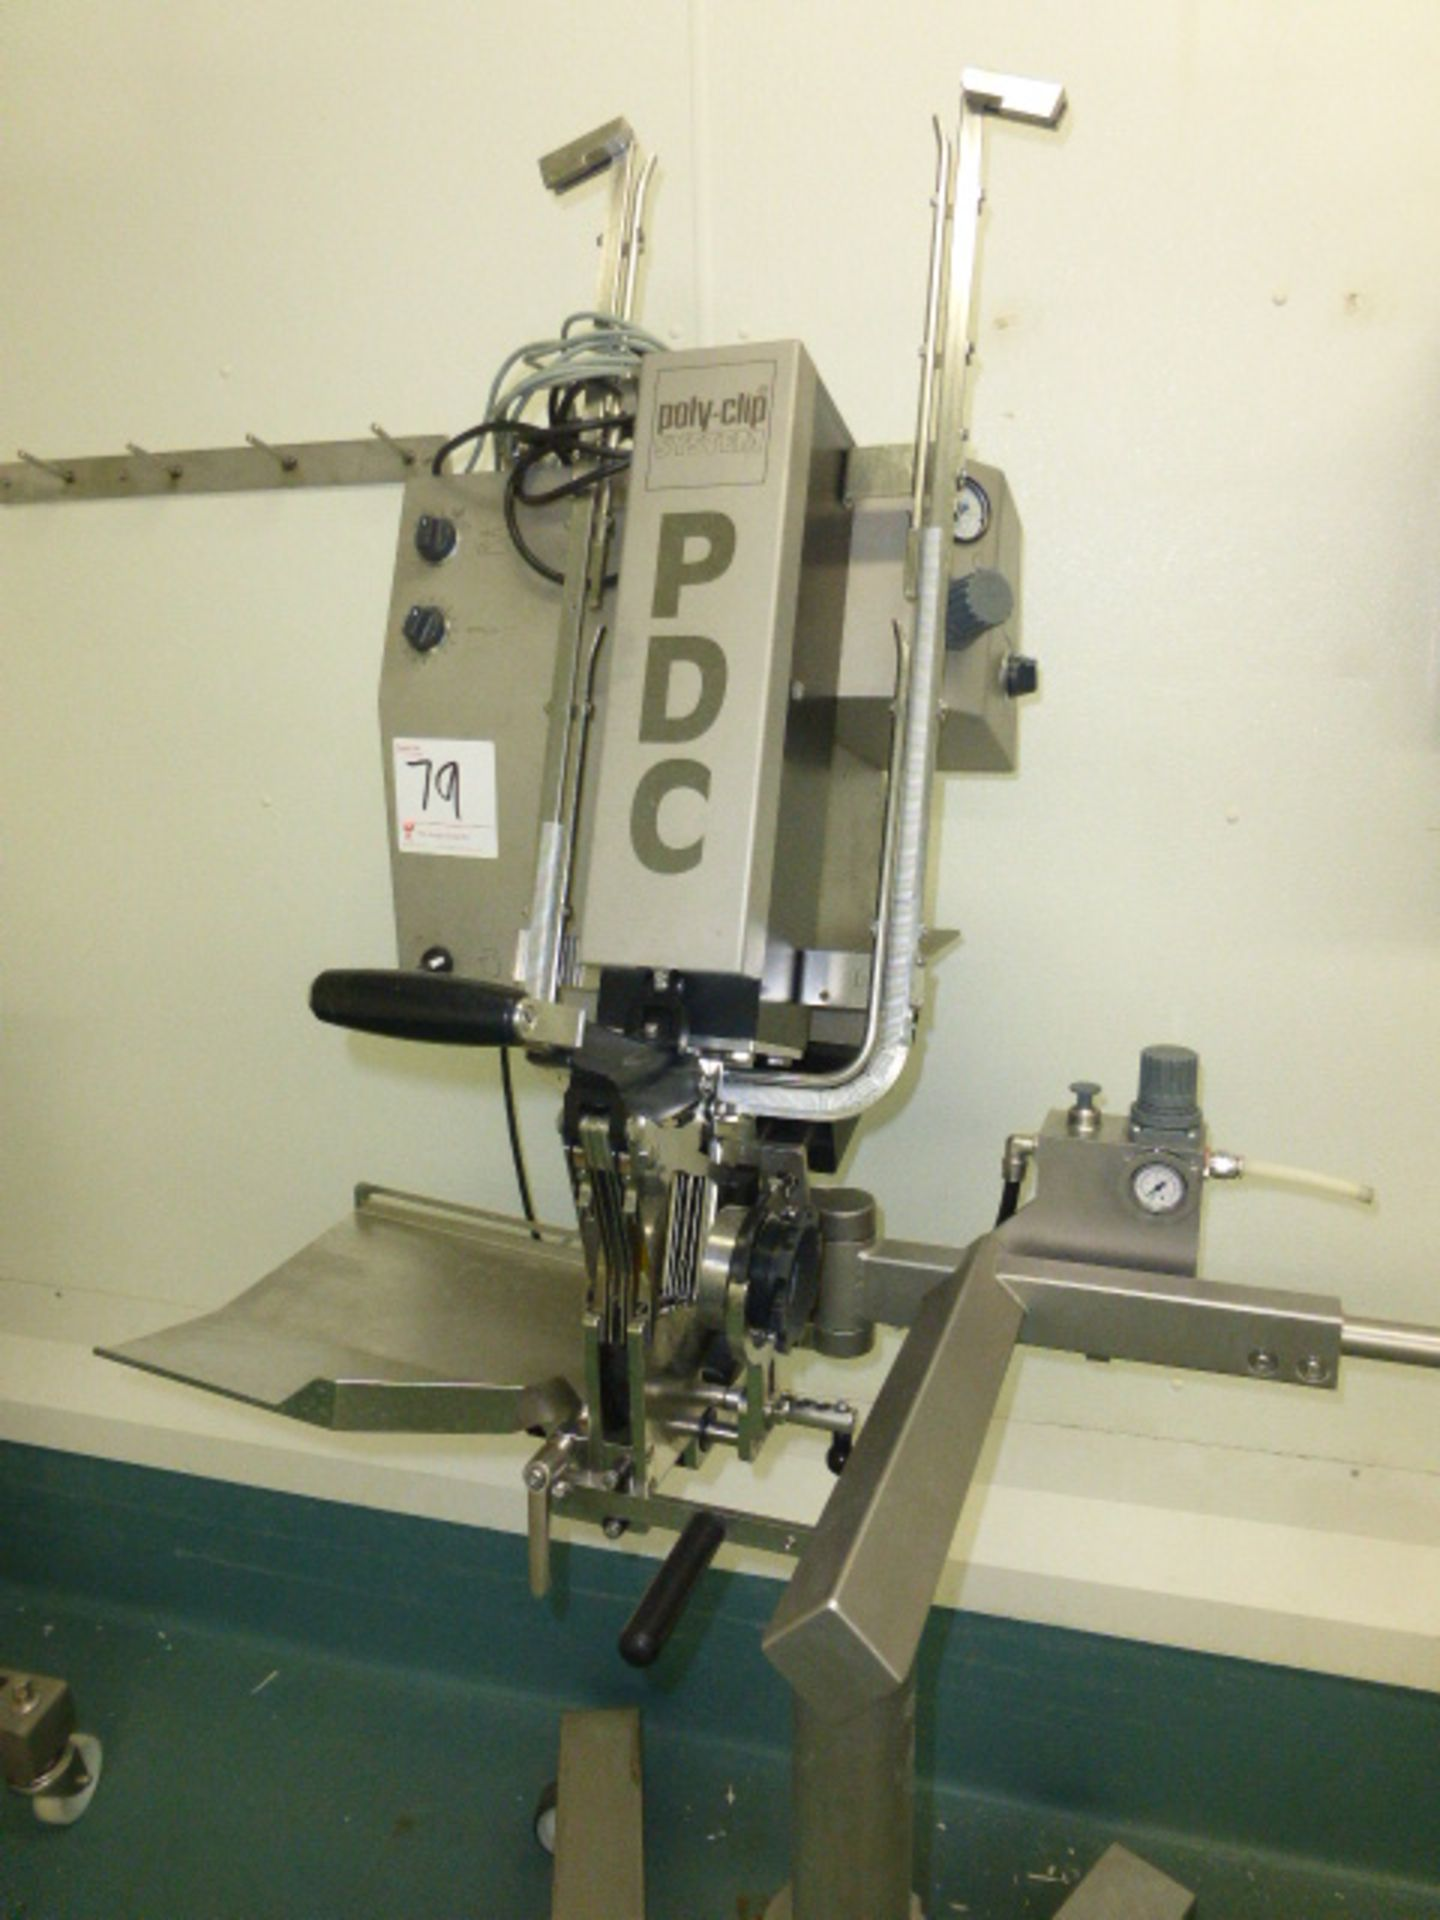 PDC poly clip system, model PDC 700, s/n 3557/16 - Image 2 of 4